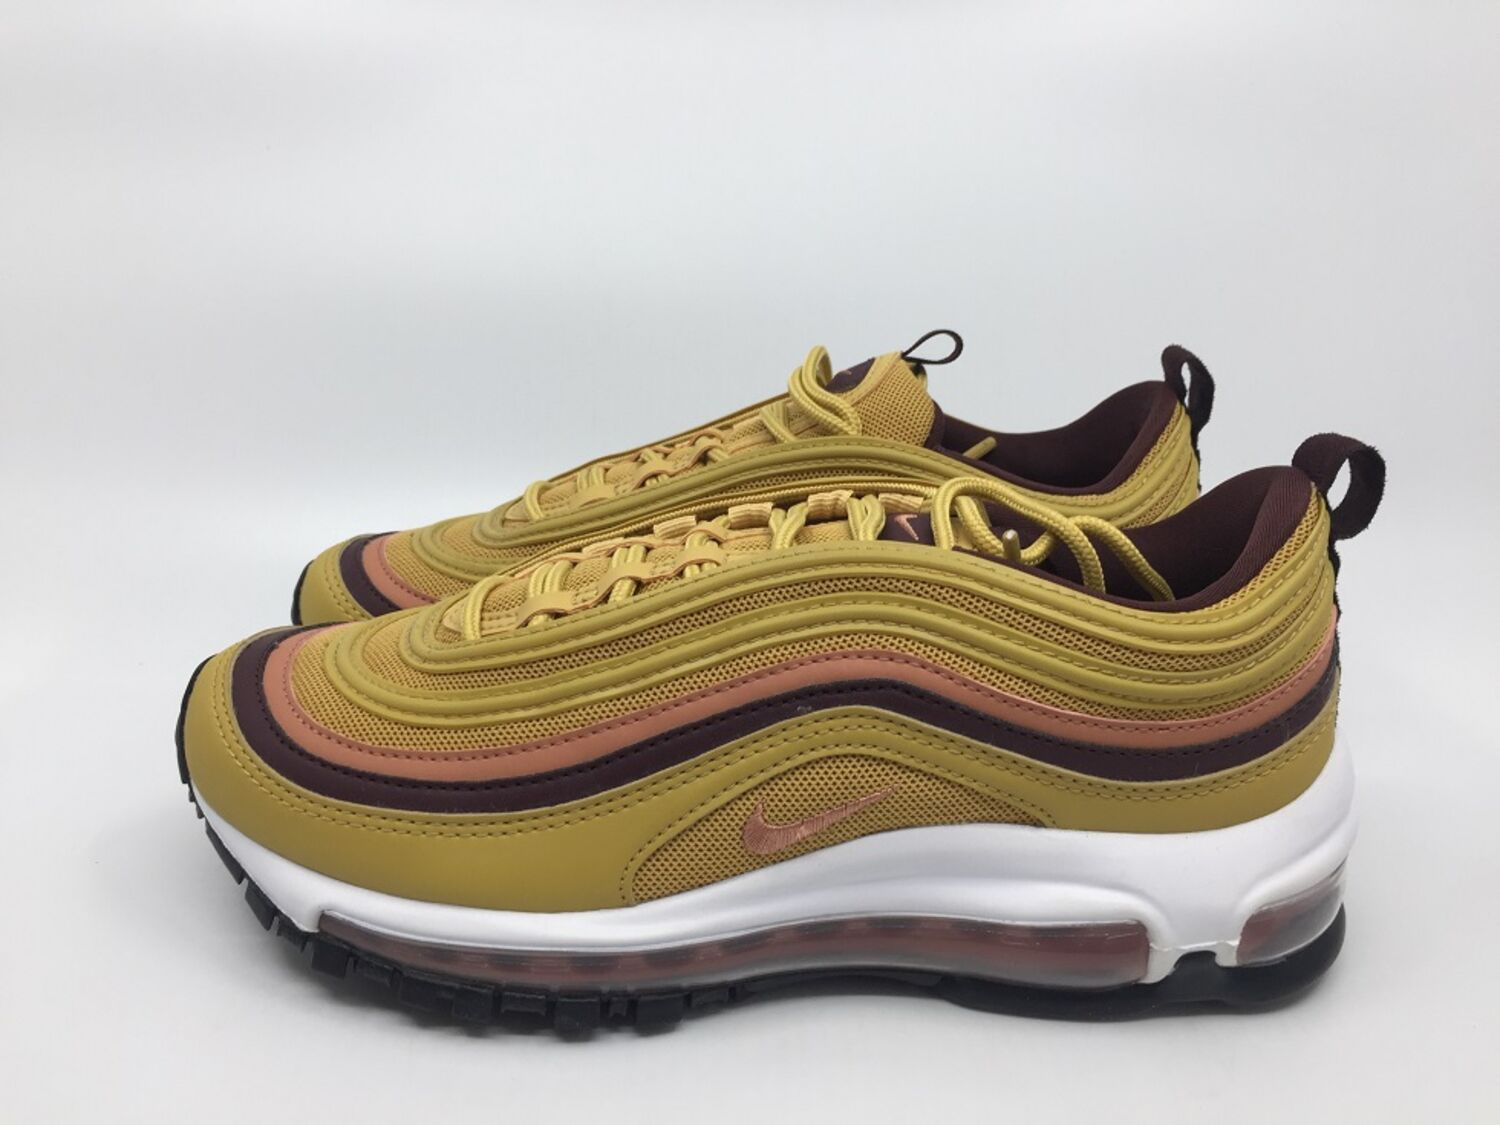 NIKE AIR MAX 97 PRM Art.Nr. 917646 005 Sneaker Damen